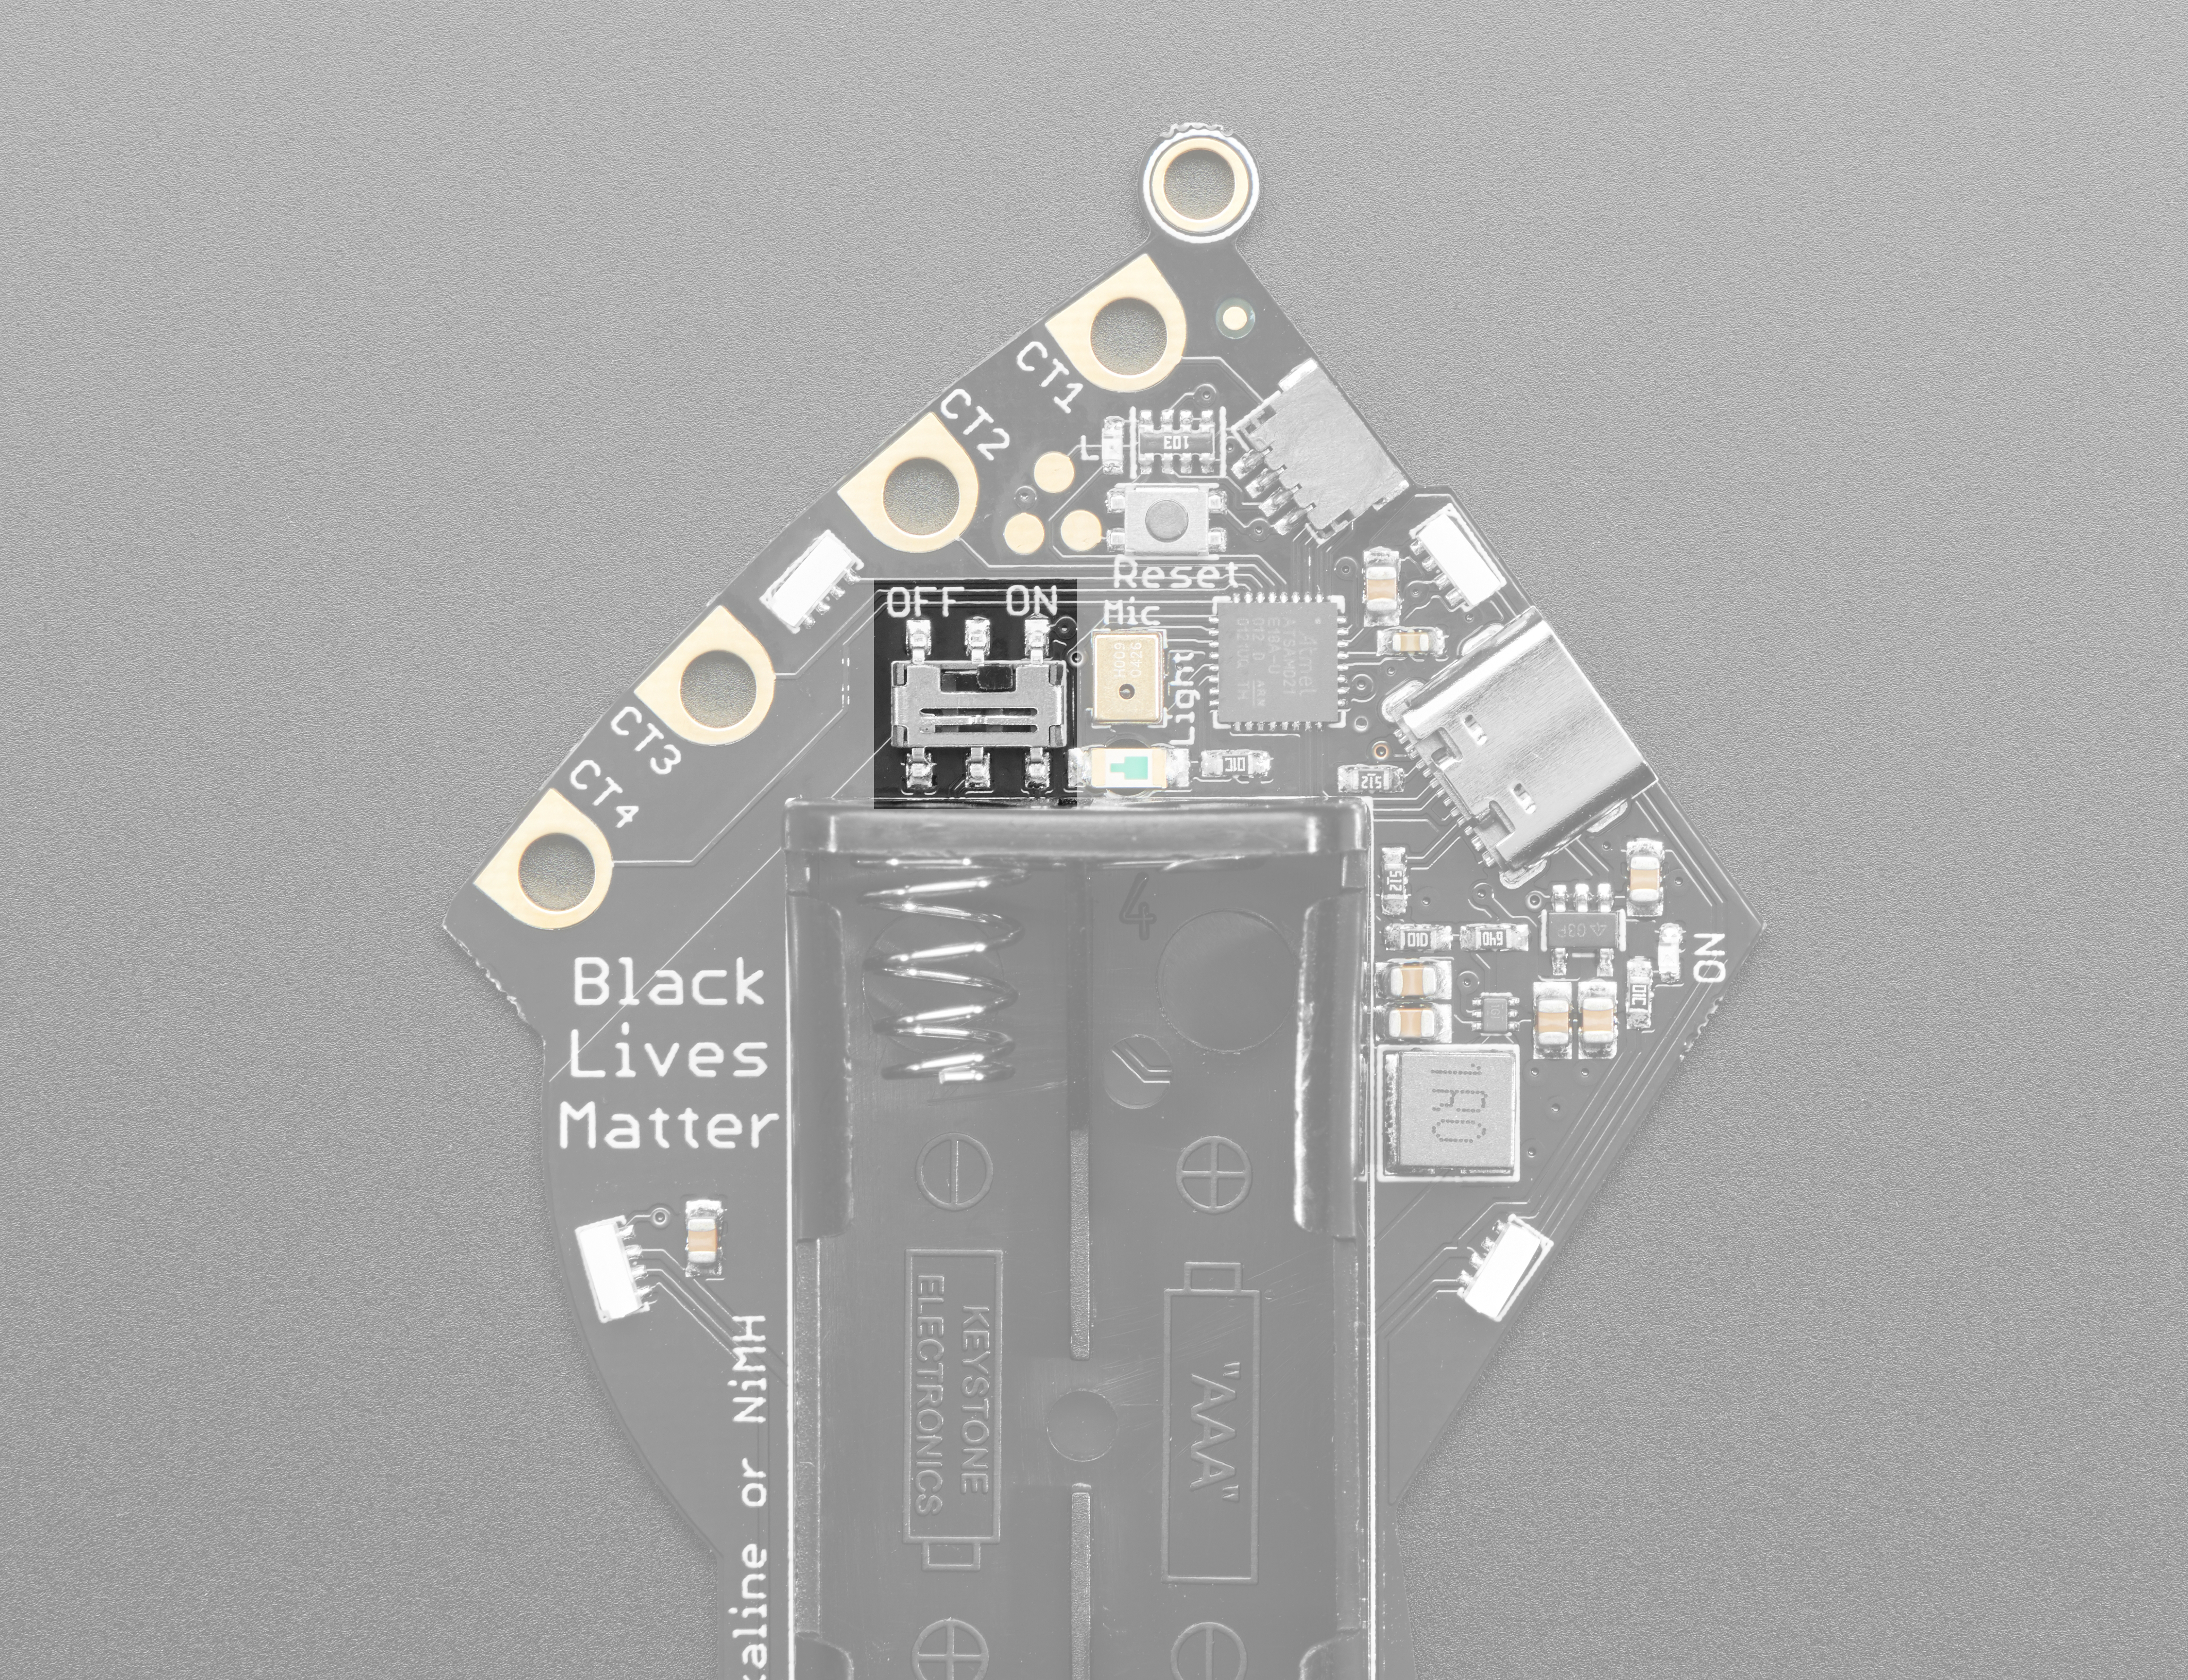 adafruit_products_BLM_pinouts_ON_OFF_switch.jpg